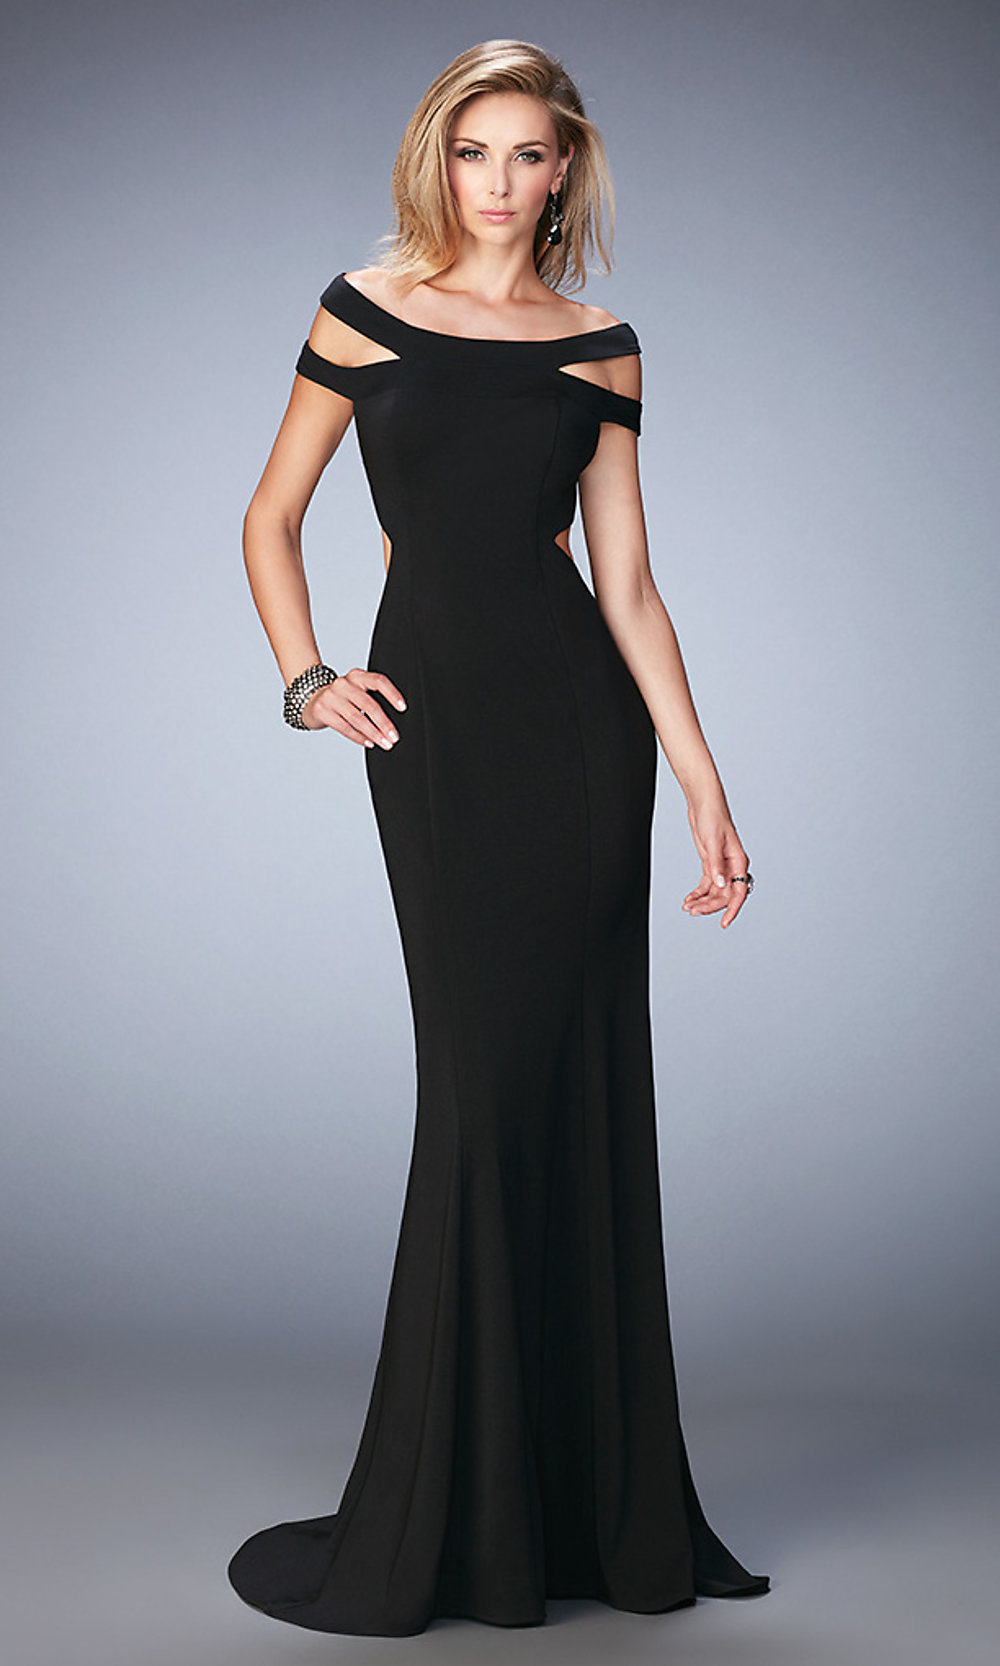 The dress is a delicate and classy looking and holds it own even without jewelry. The length is just right and easy to dance bestsupsm5.cf delivery was amazingly fast.